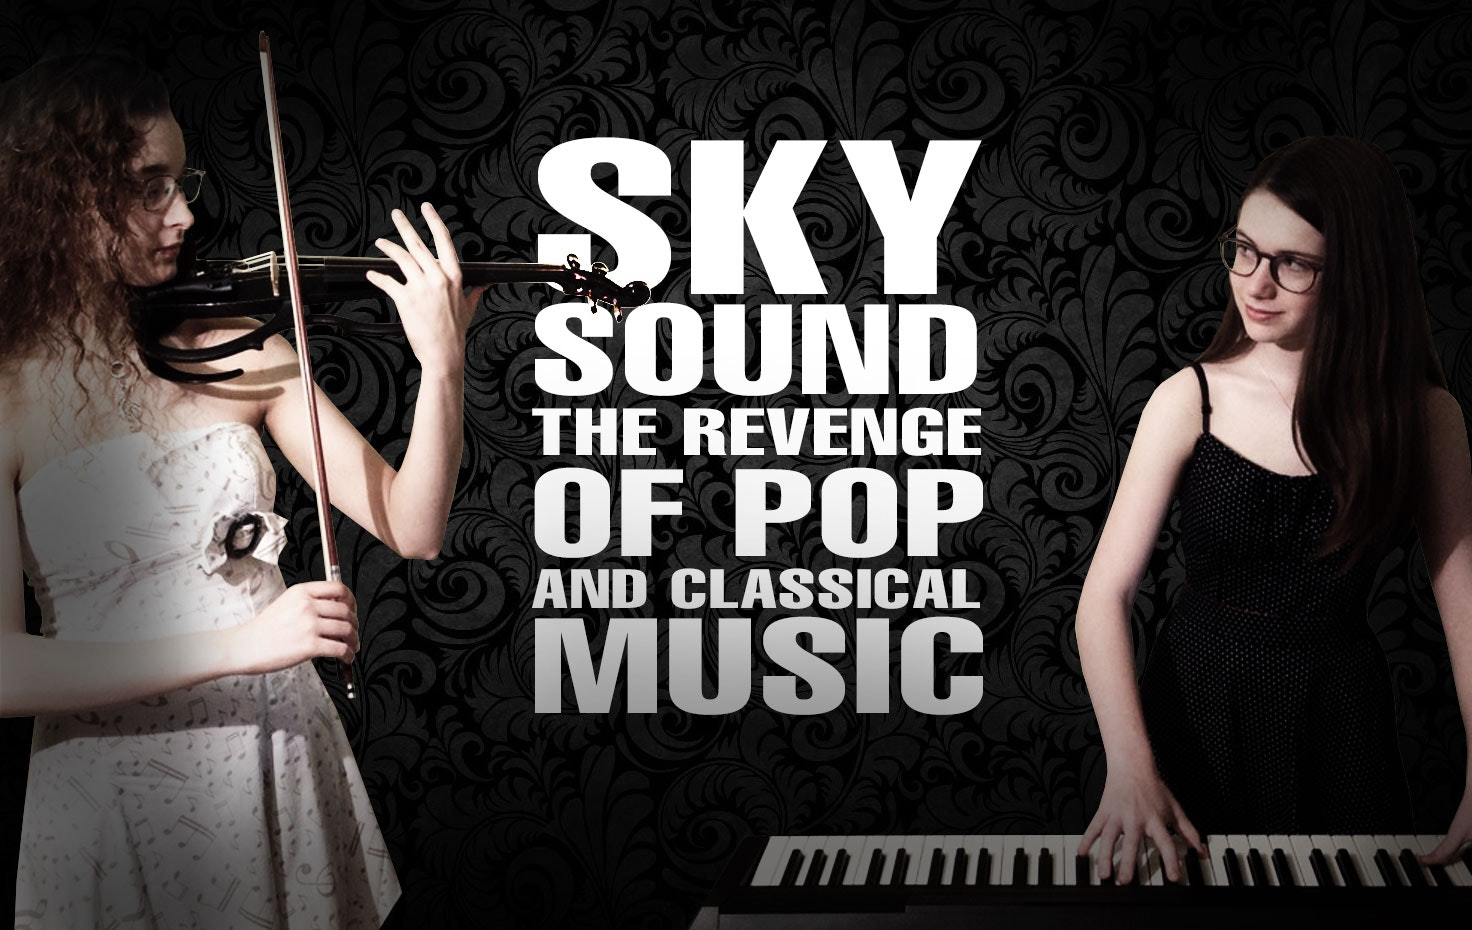 SKYSOUND - The revenge of pop and classical music